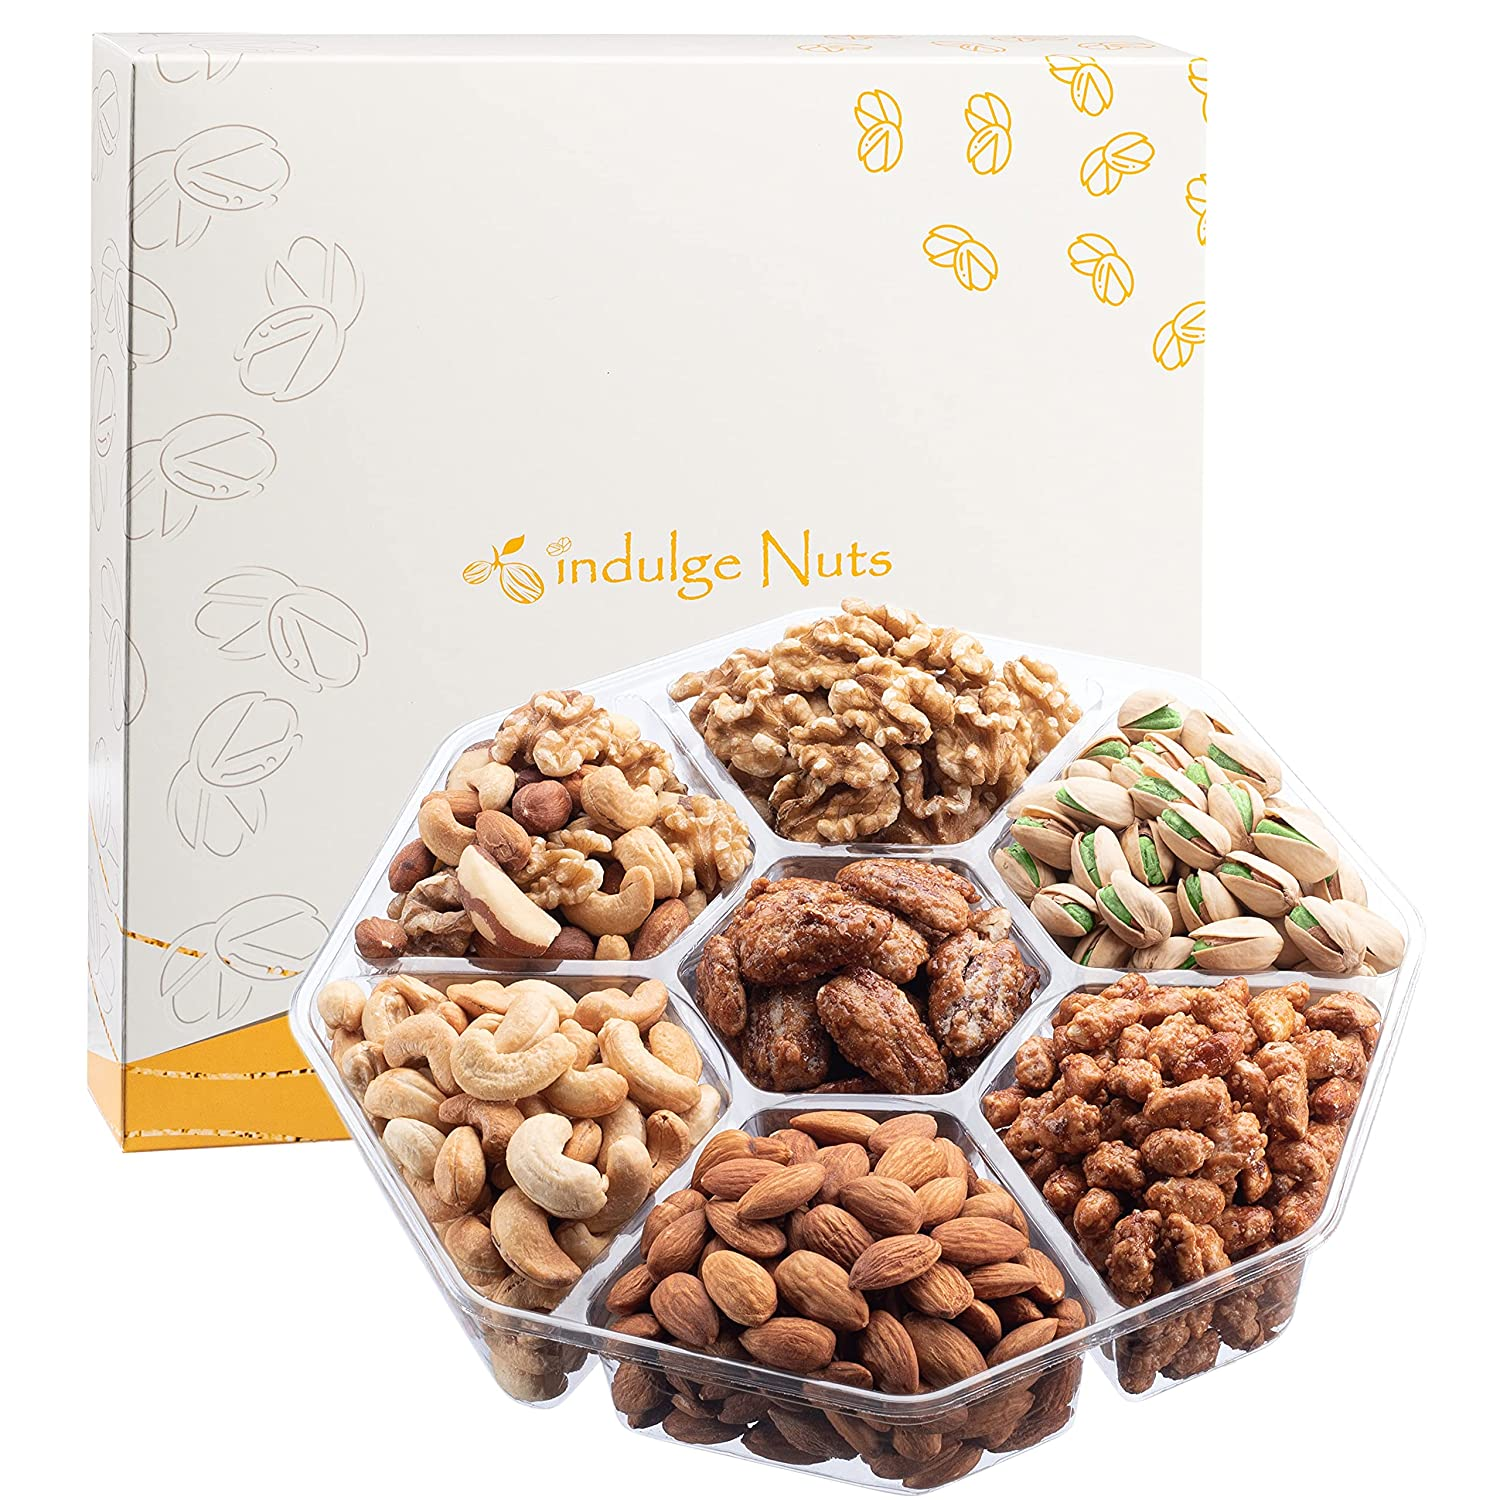 [2 Pounds] Fathers Day Gourmet Nut Gift Basket by Indulge Nuts | 7 Scrumptious Varieties of Fresh Nuts Tray | Kosher Snack Box Care Package for Thanksgiving, Holiday, Easter, Birthday, Mothers Day